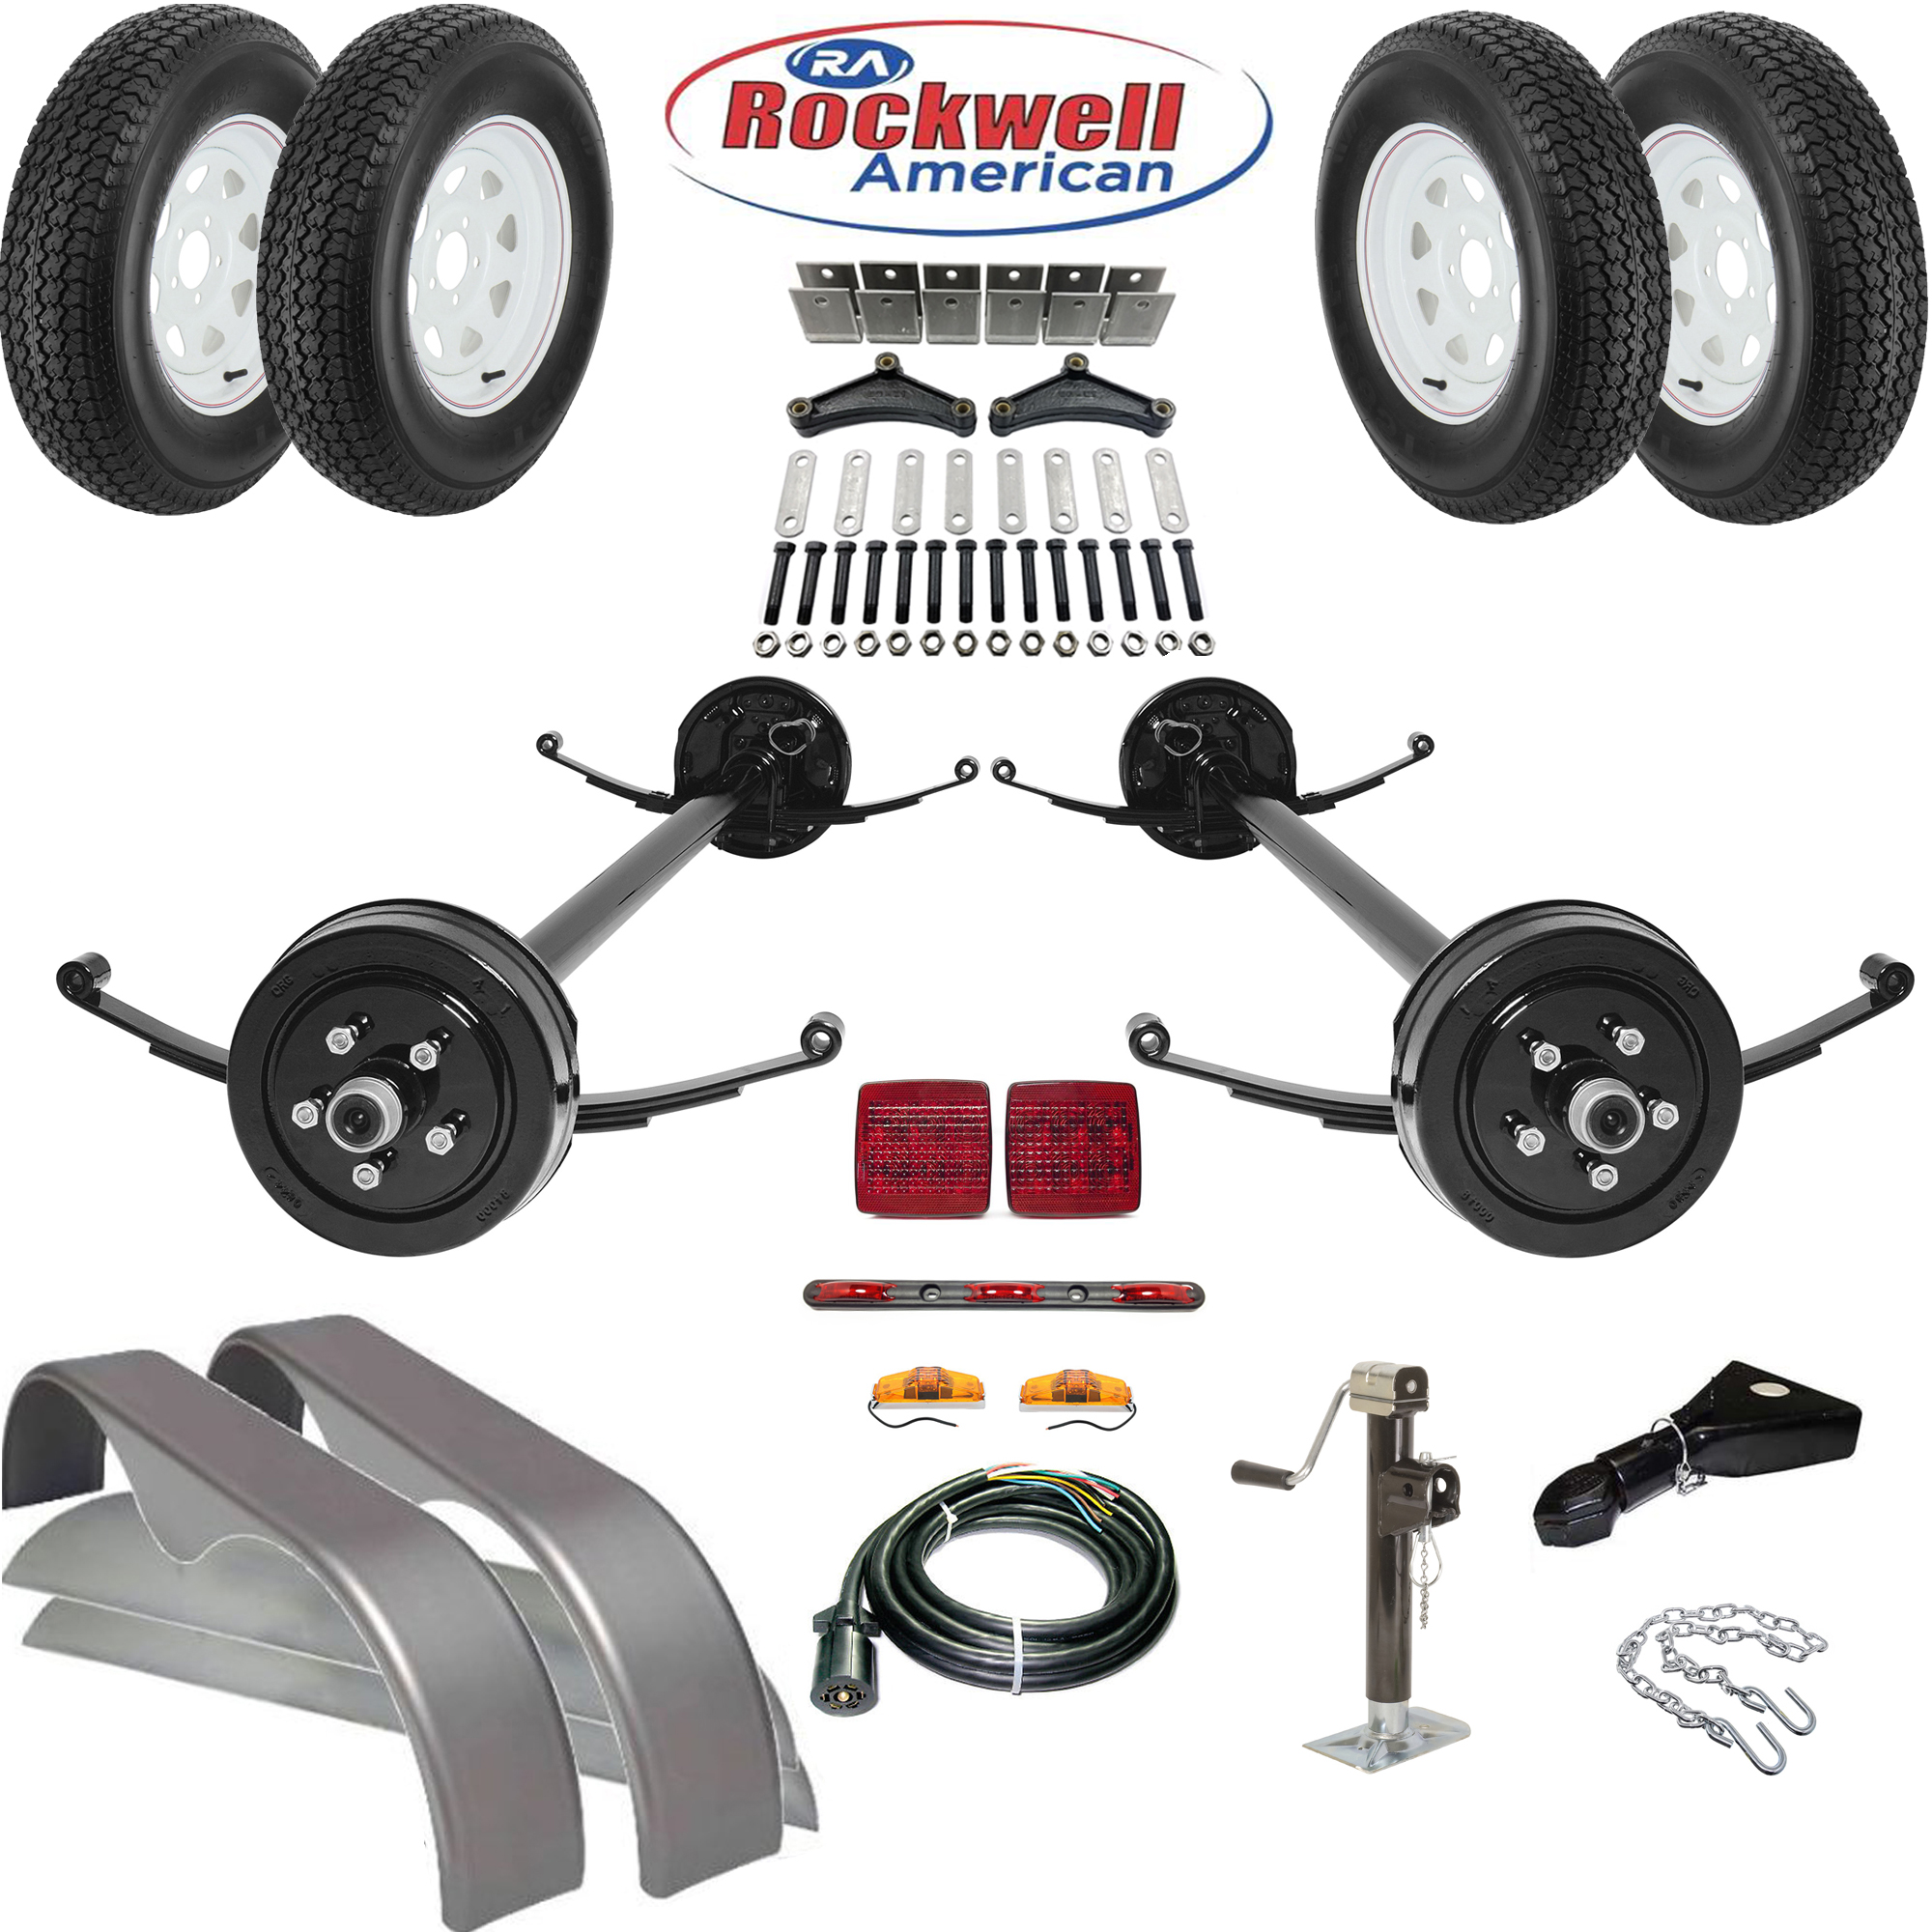 Tandem Brake Axle Trailer Parts Kit 7000 Lb Capacity Johnson Double Wiring Diagram Rockwell American Axles With Posi